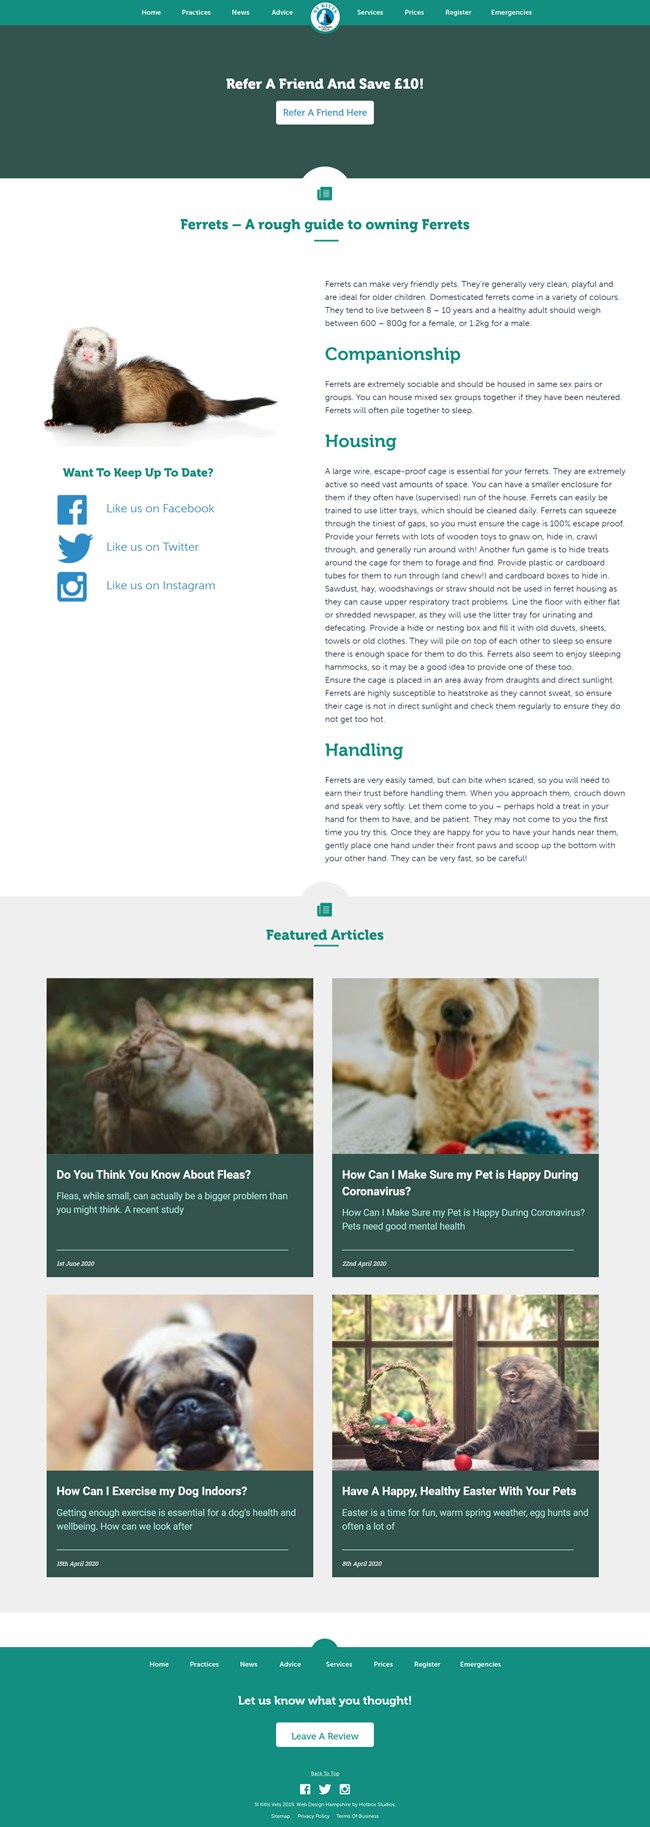 St Kitts Vet Website Design and WordPress Web Development SP011 Advice Exotic Pets Rough Guide Owning Ferrets